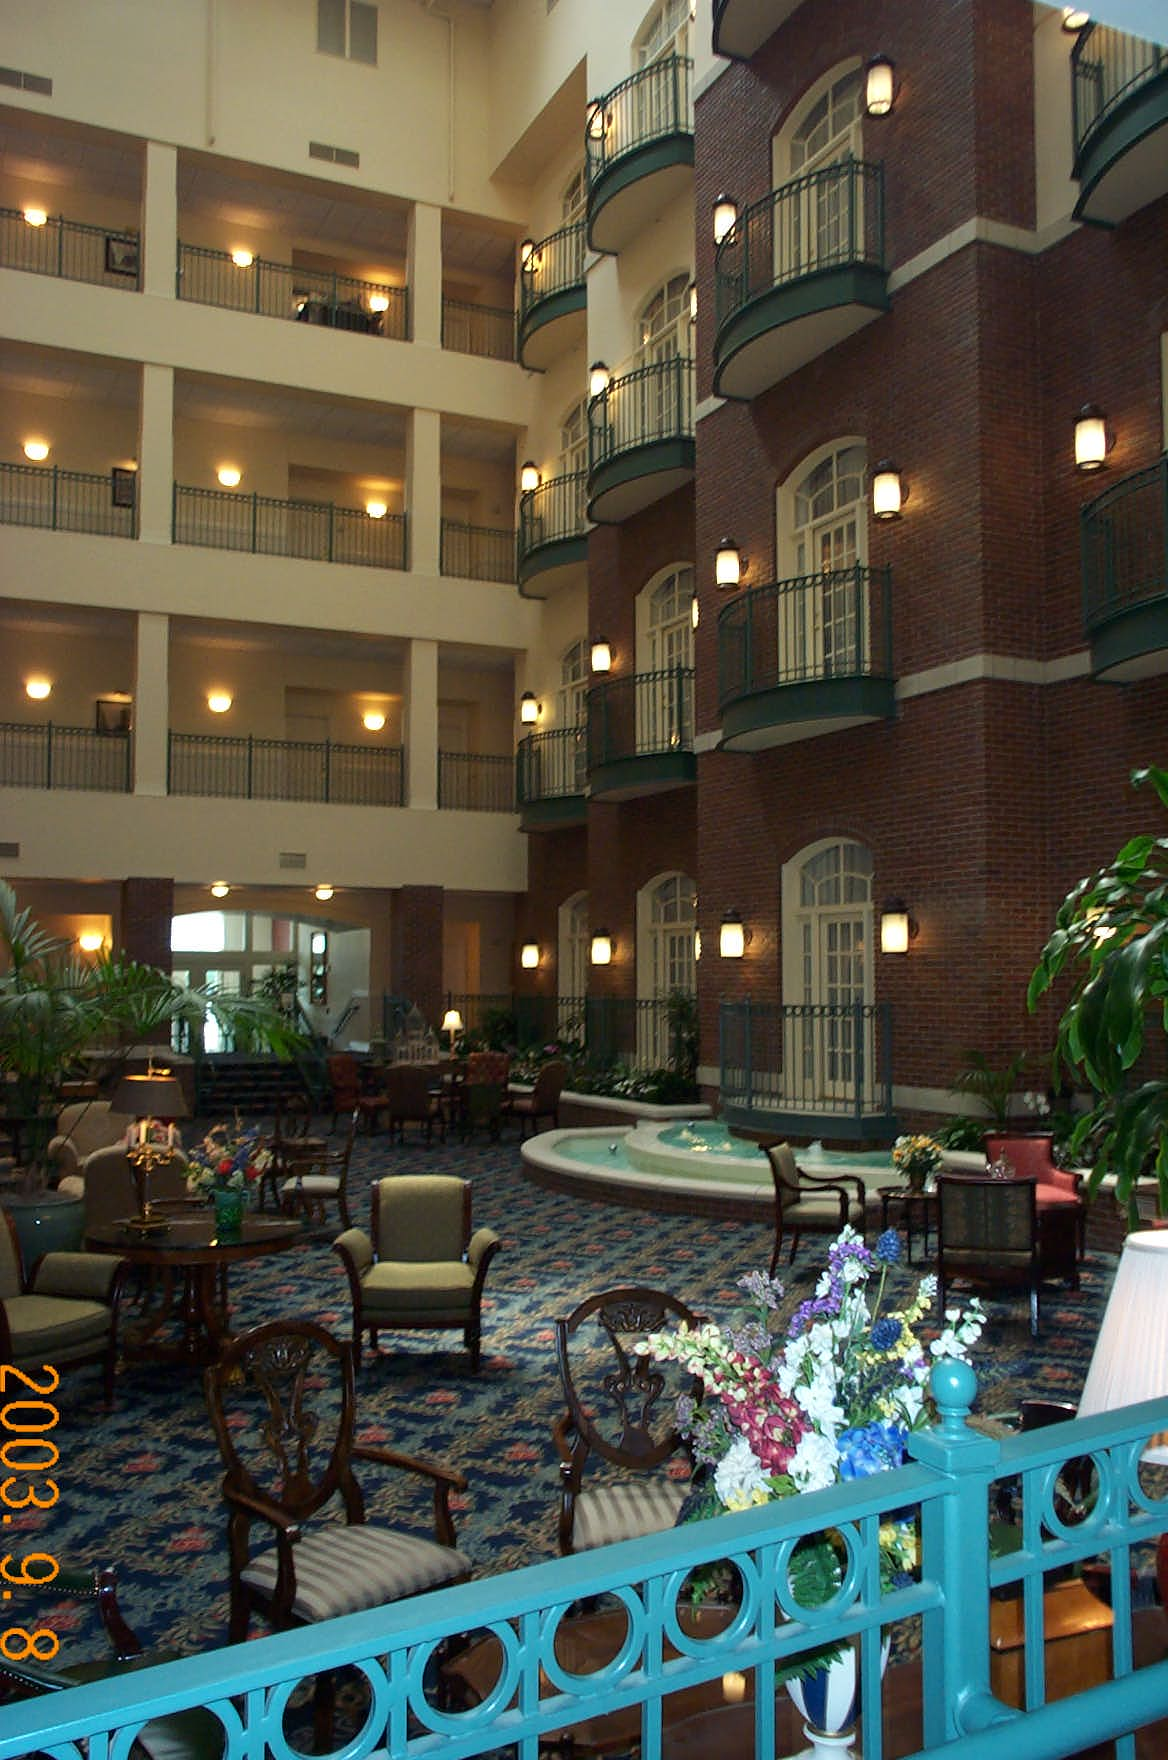 The Hotel atrium looking Southwest